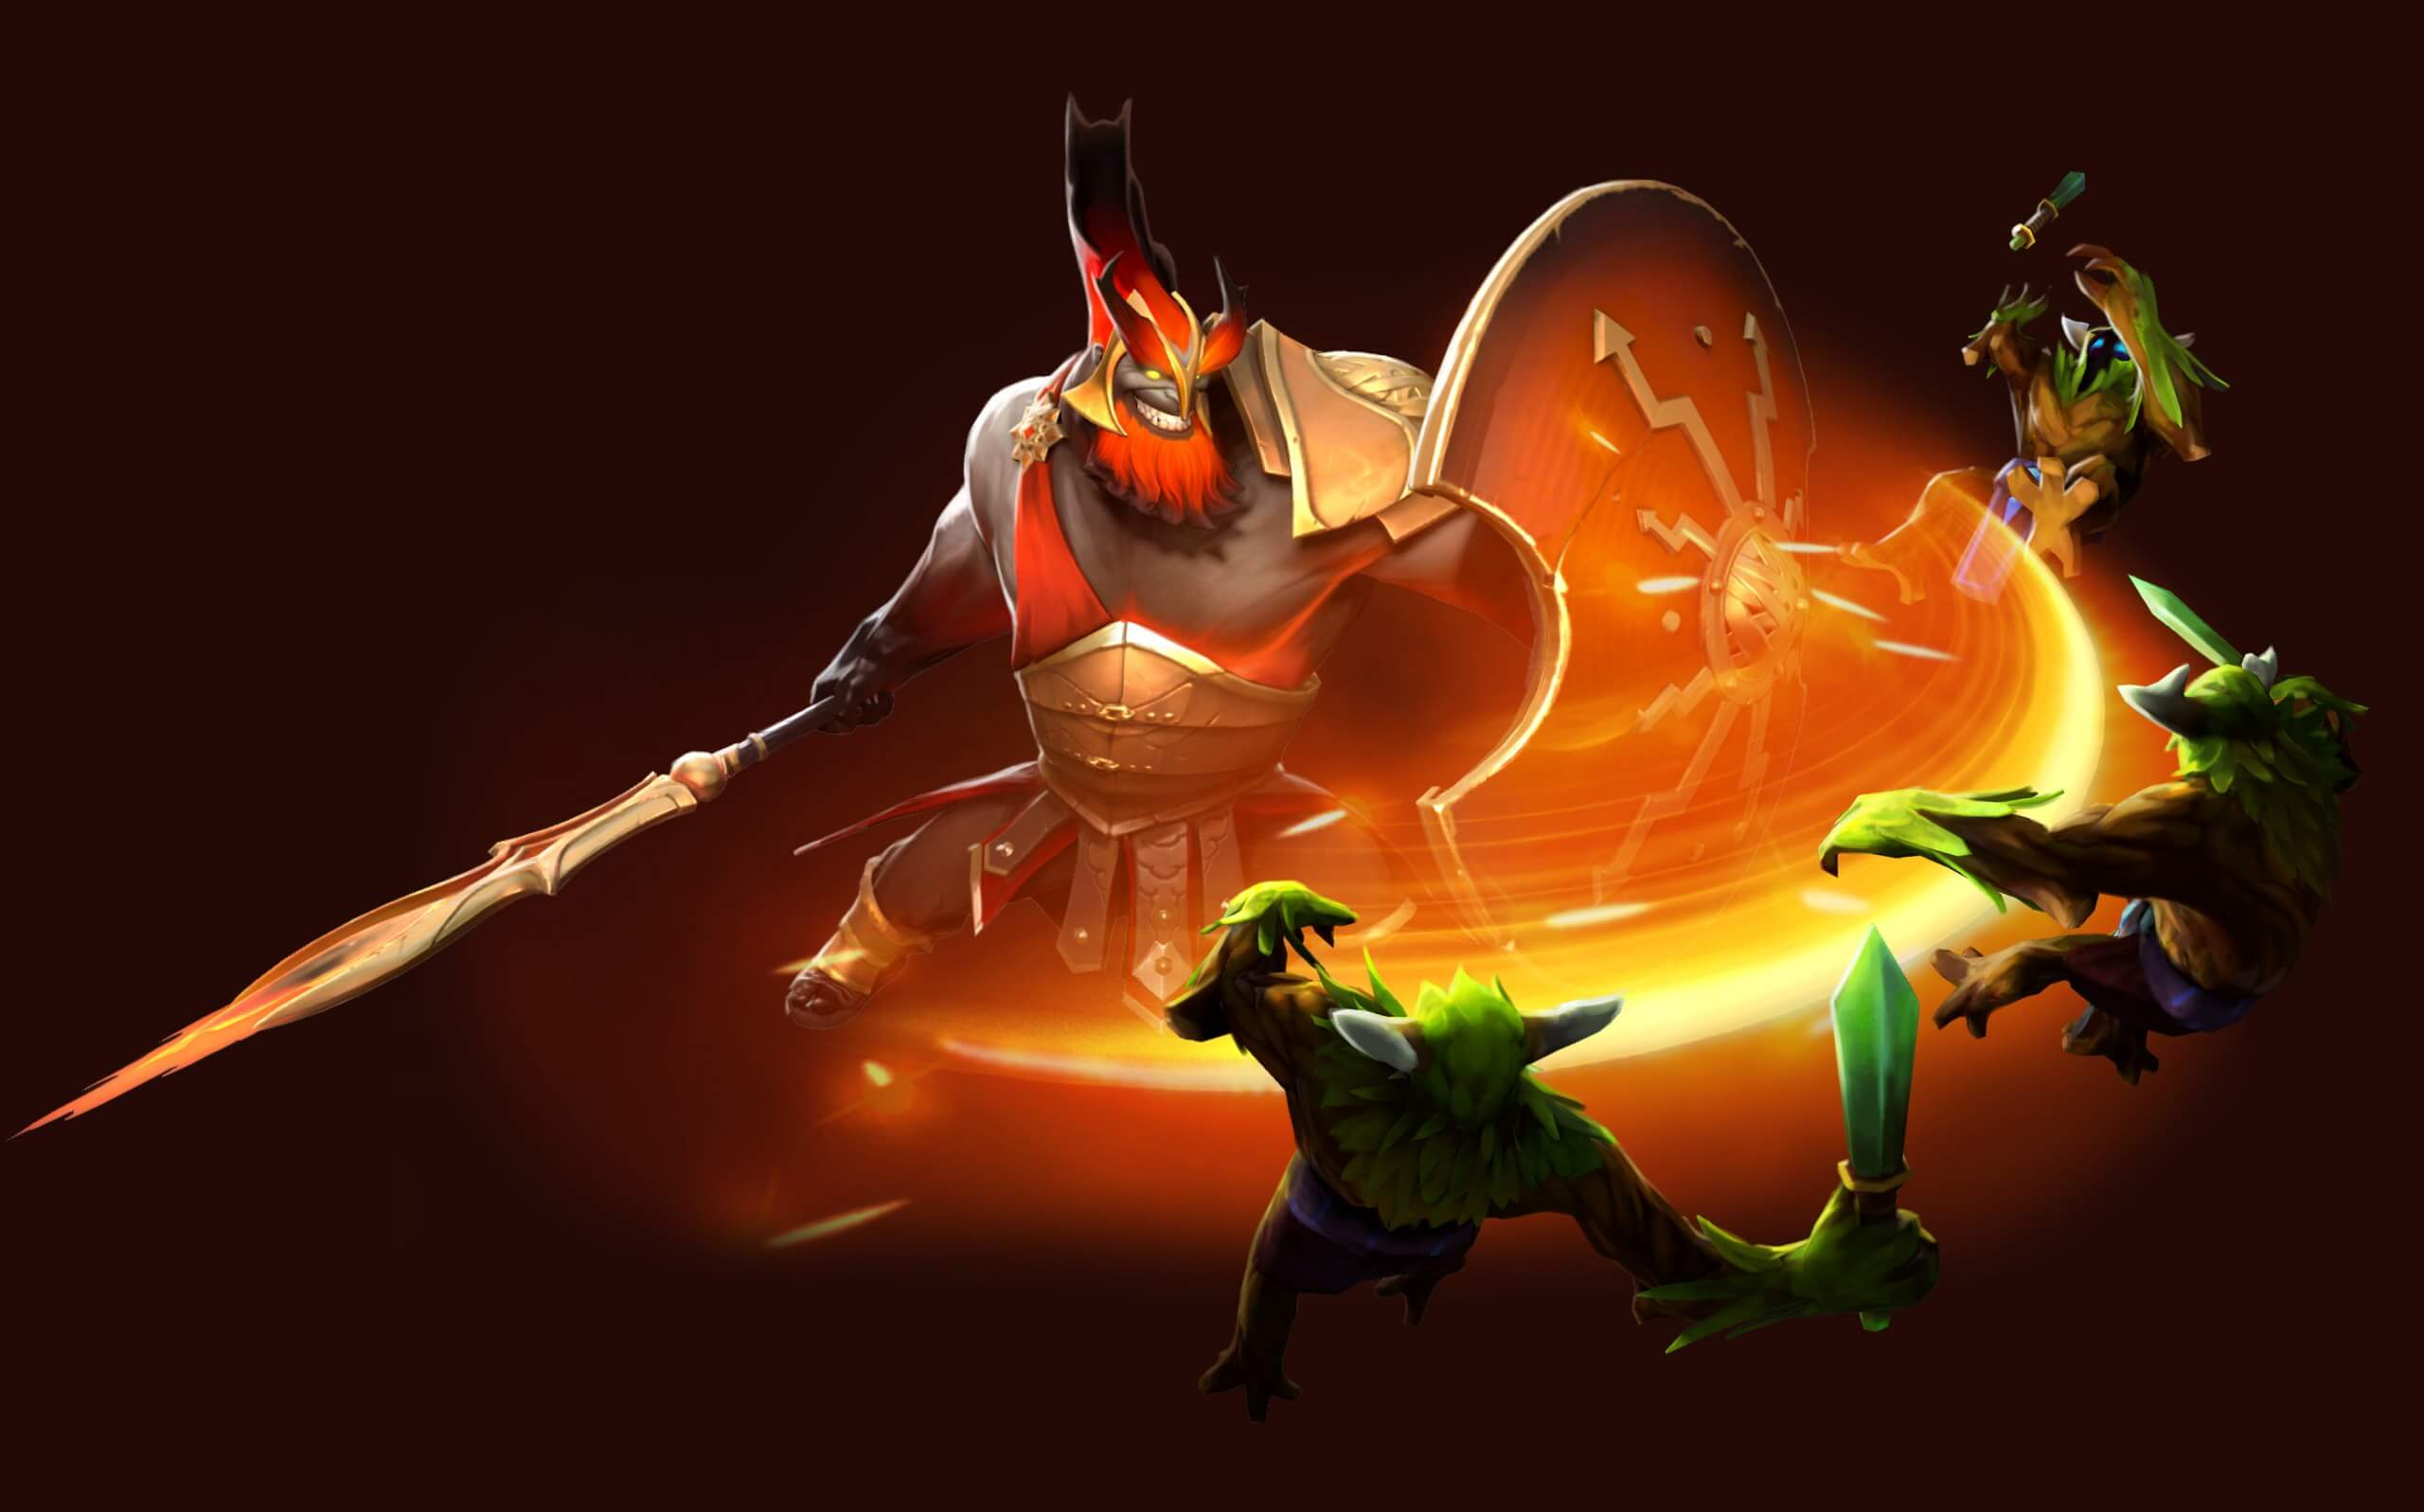 OpenAI's Dota 2 agents display their dominance over mere mortals one last time